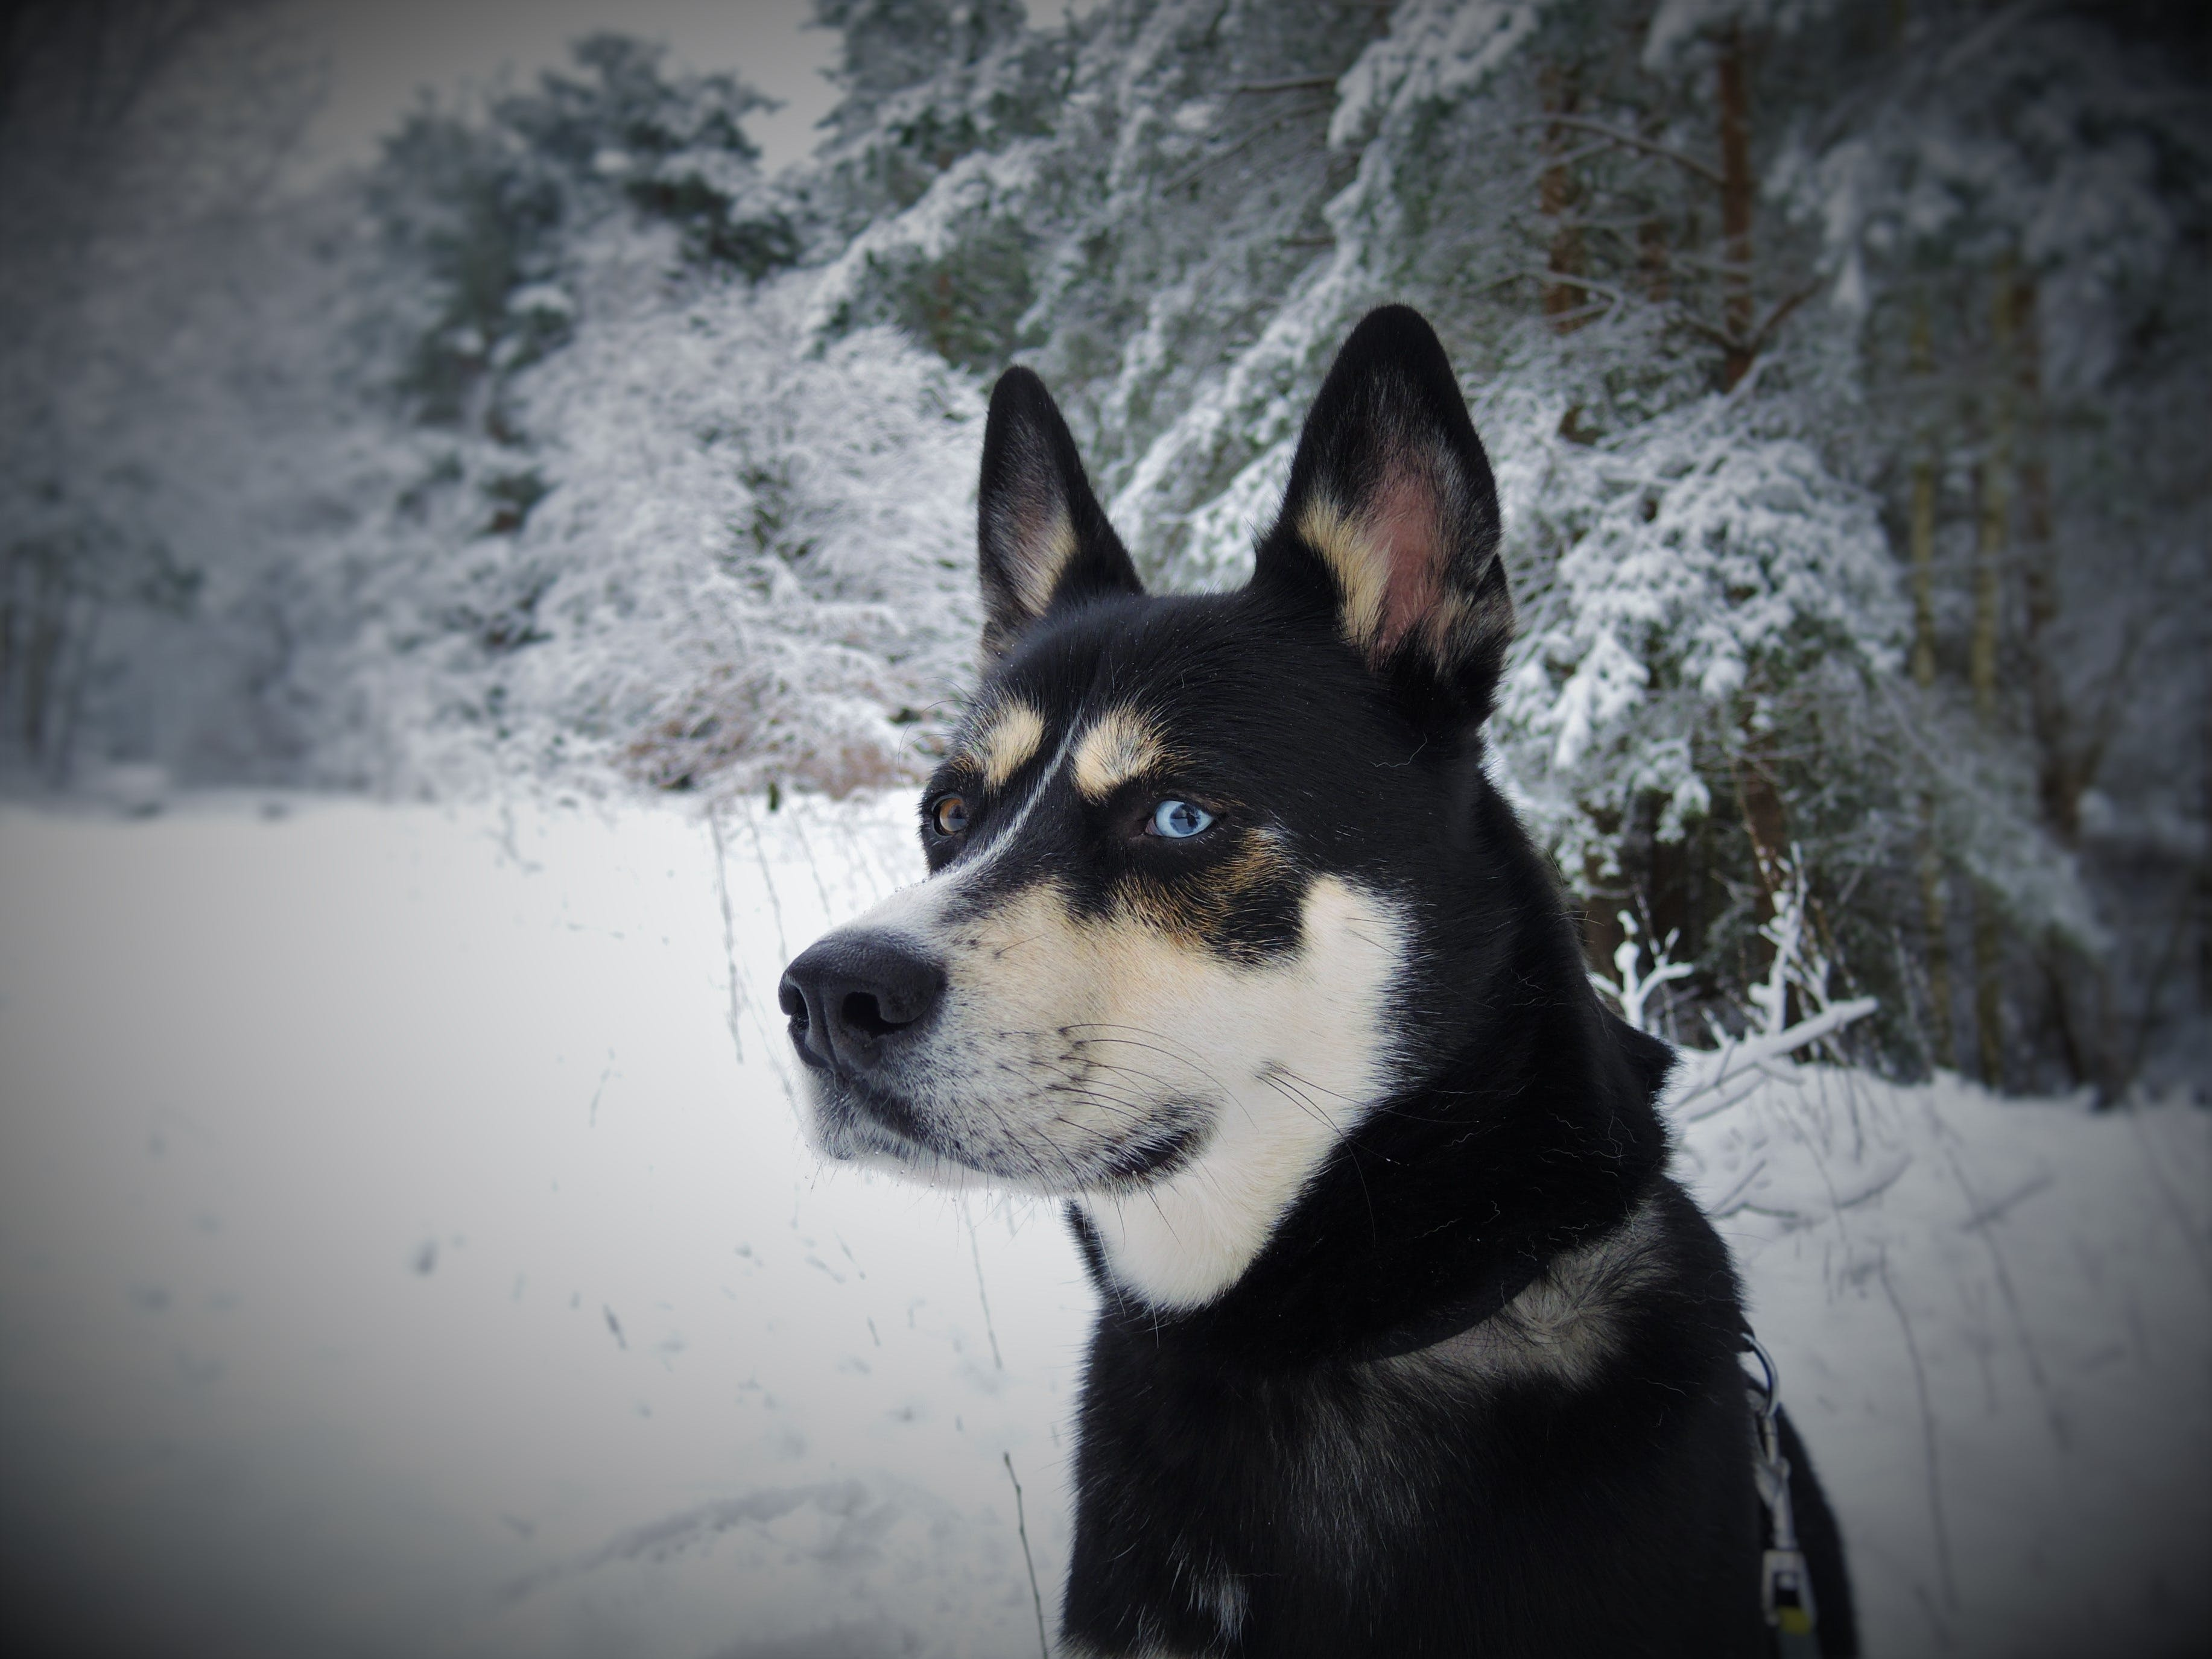 Black White and Tan Eas Siberian Laika Dog in Snow